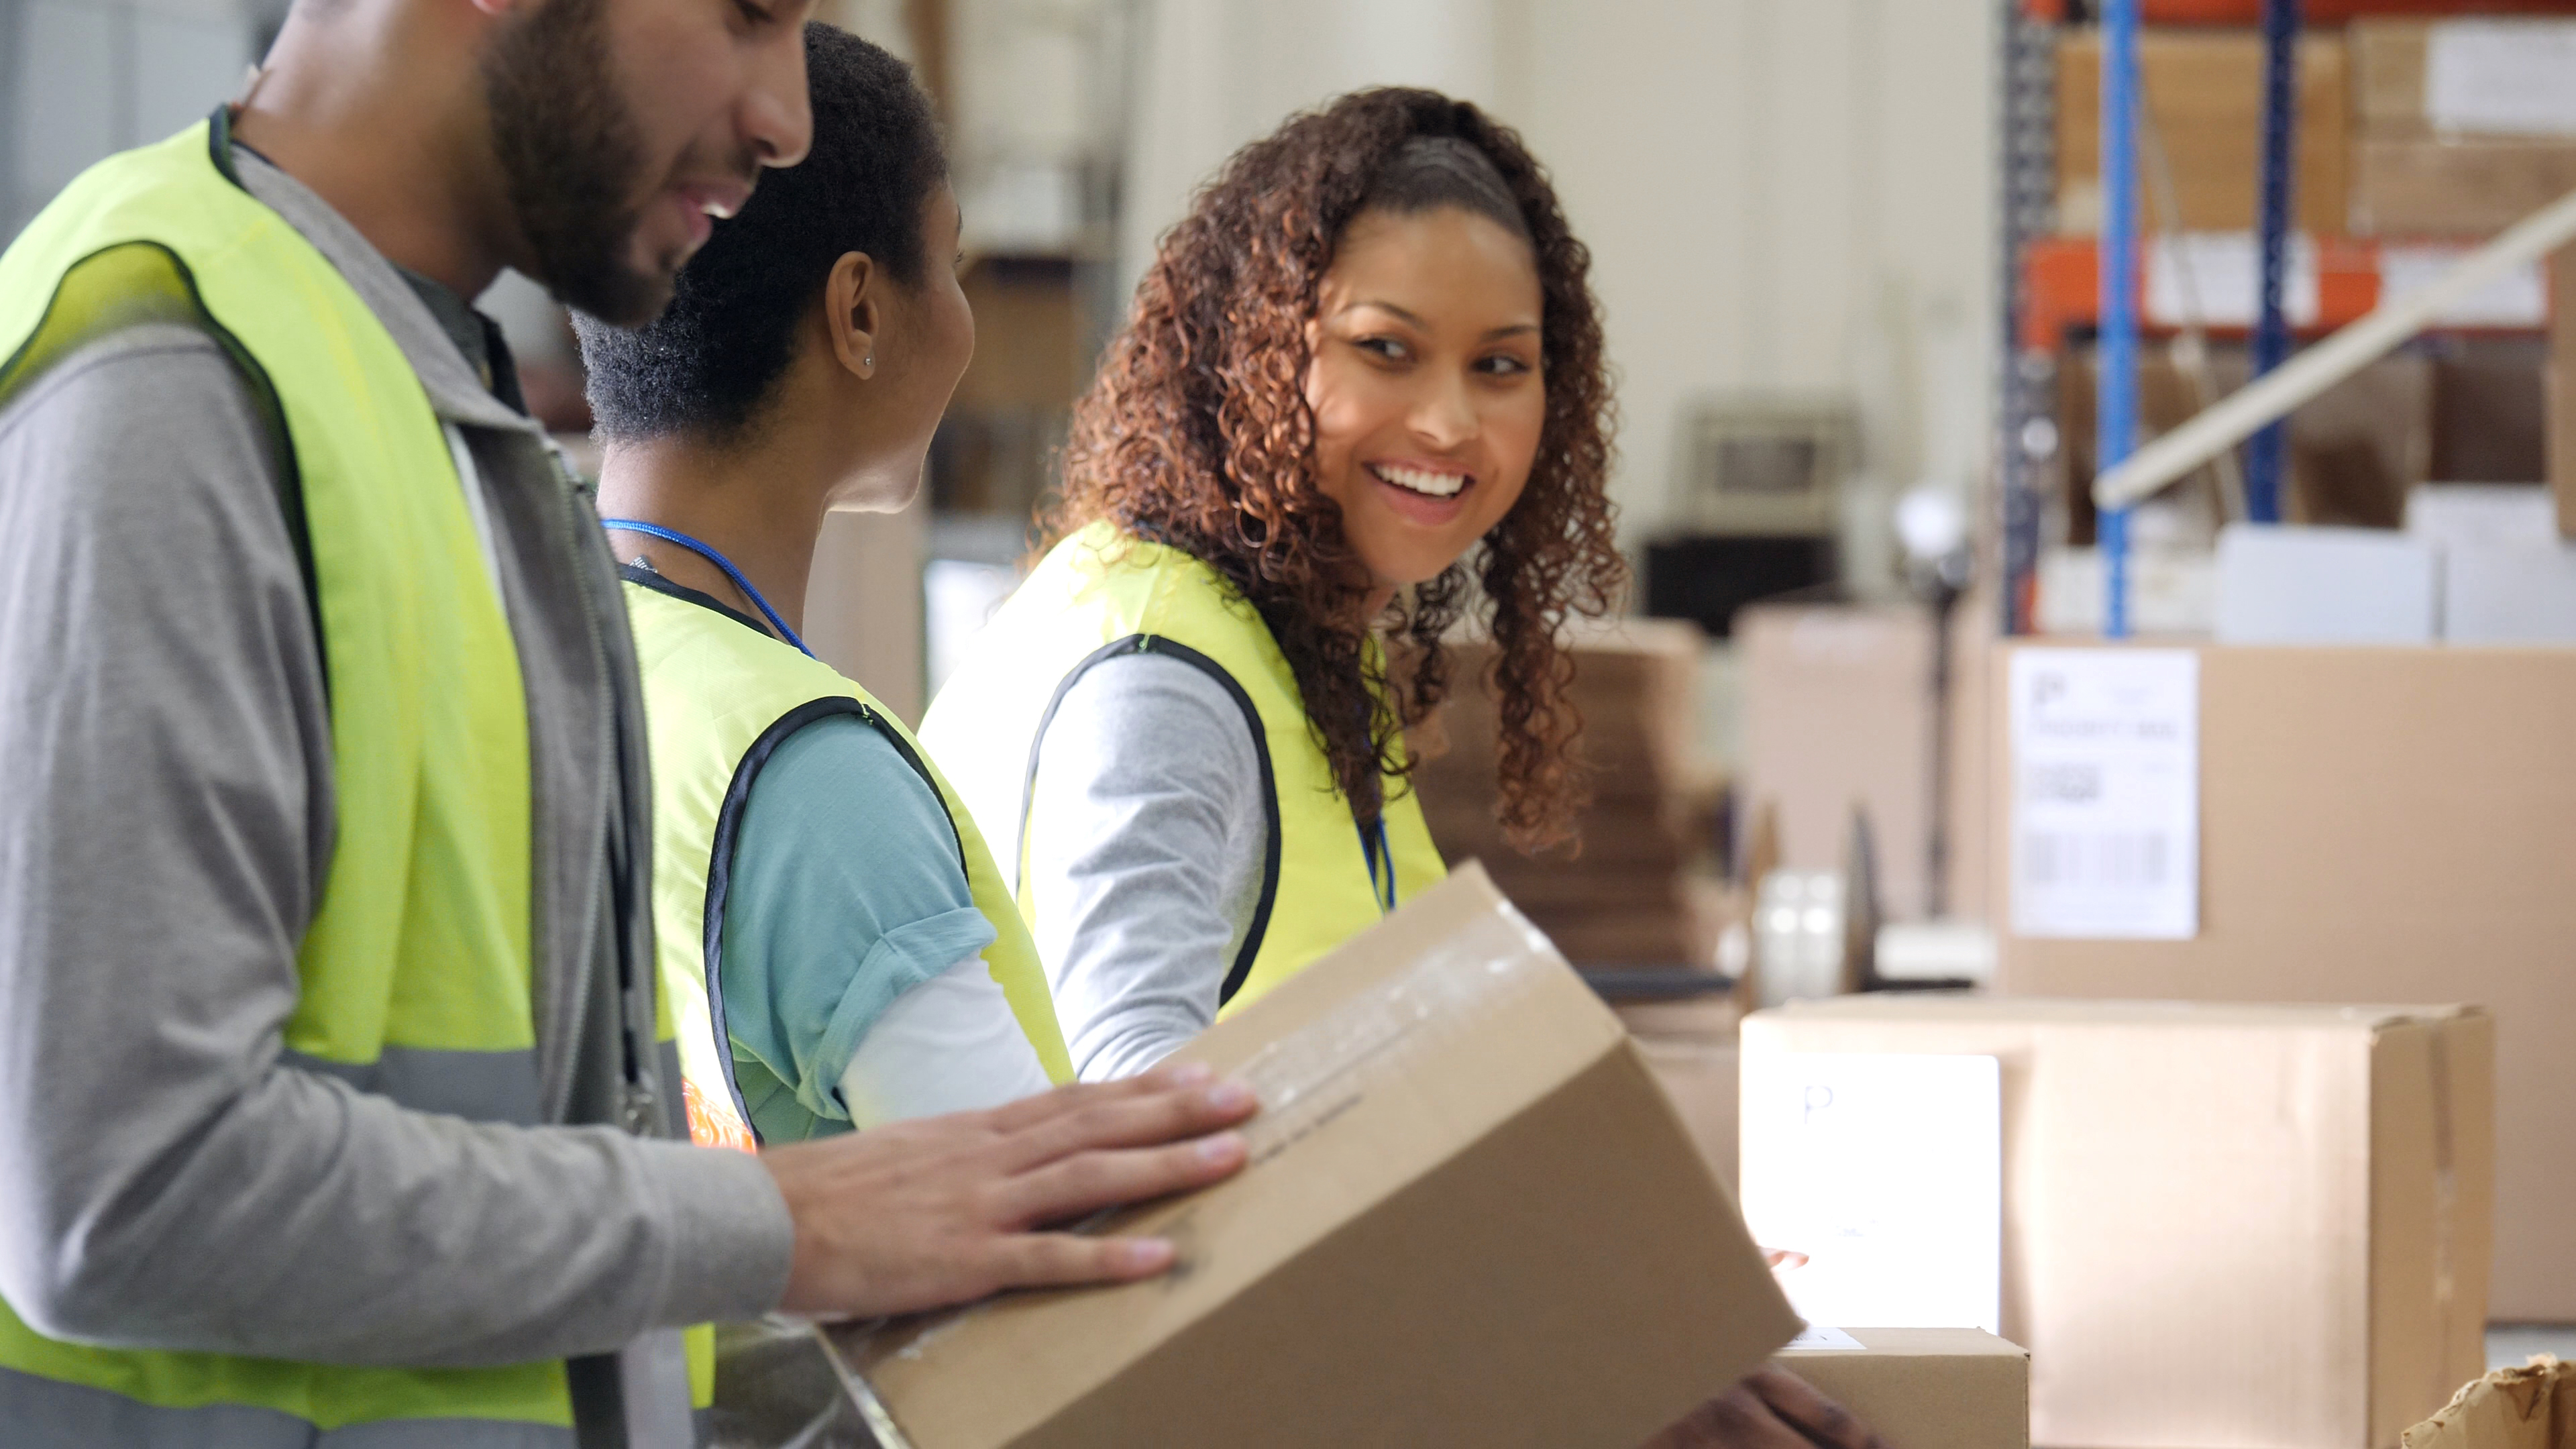 5 Signs You Need More Warehouse Shippers and Receivers